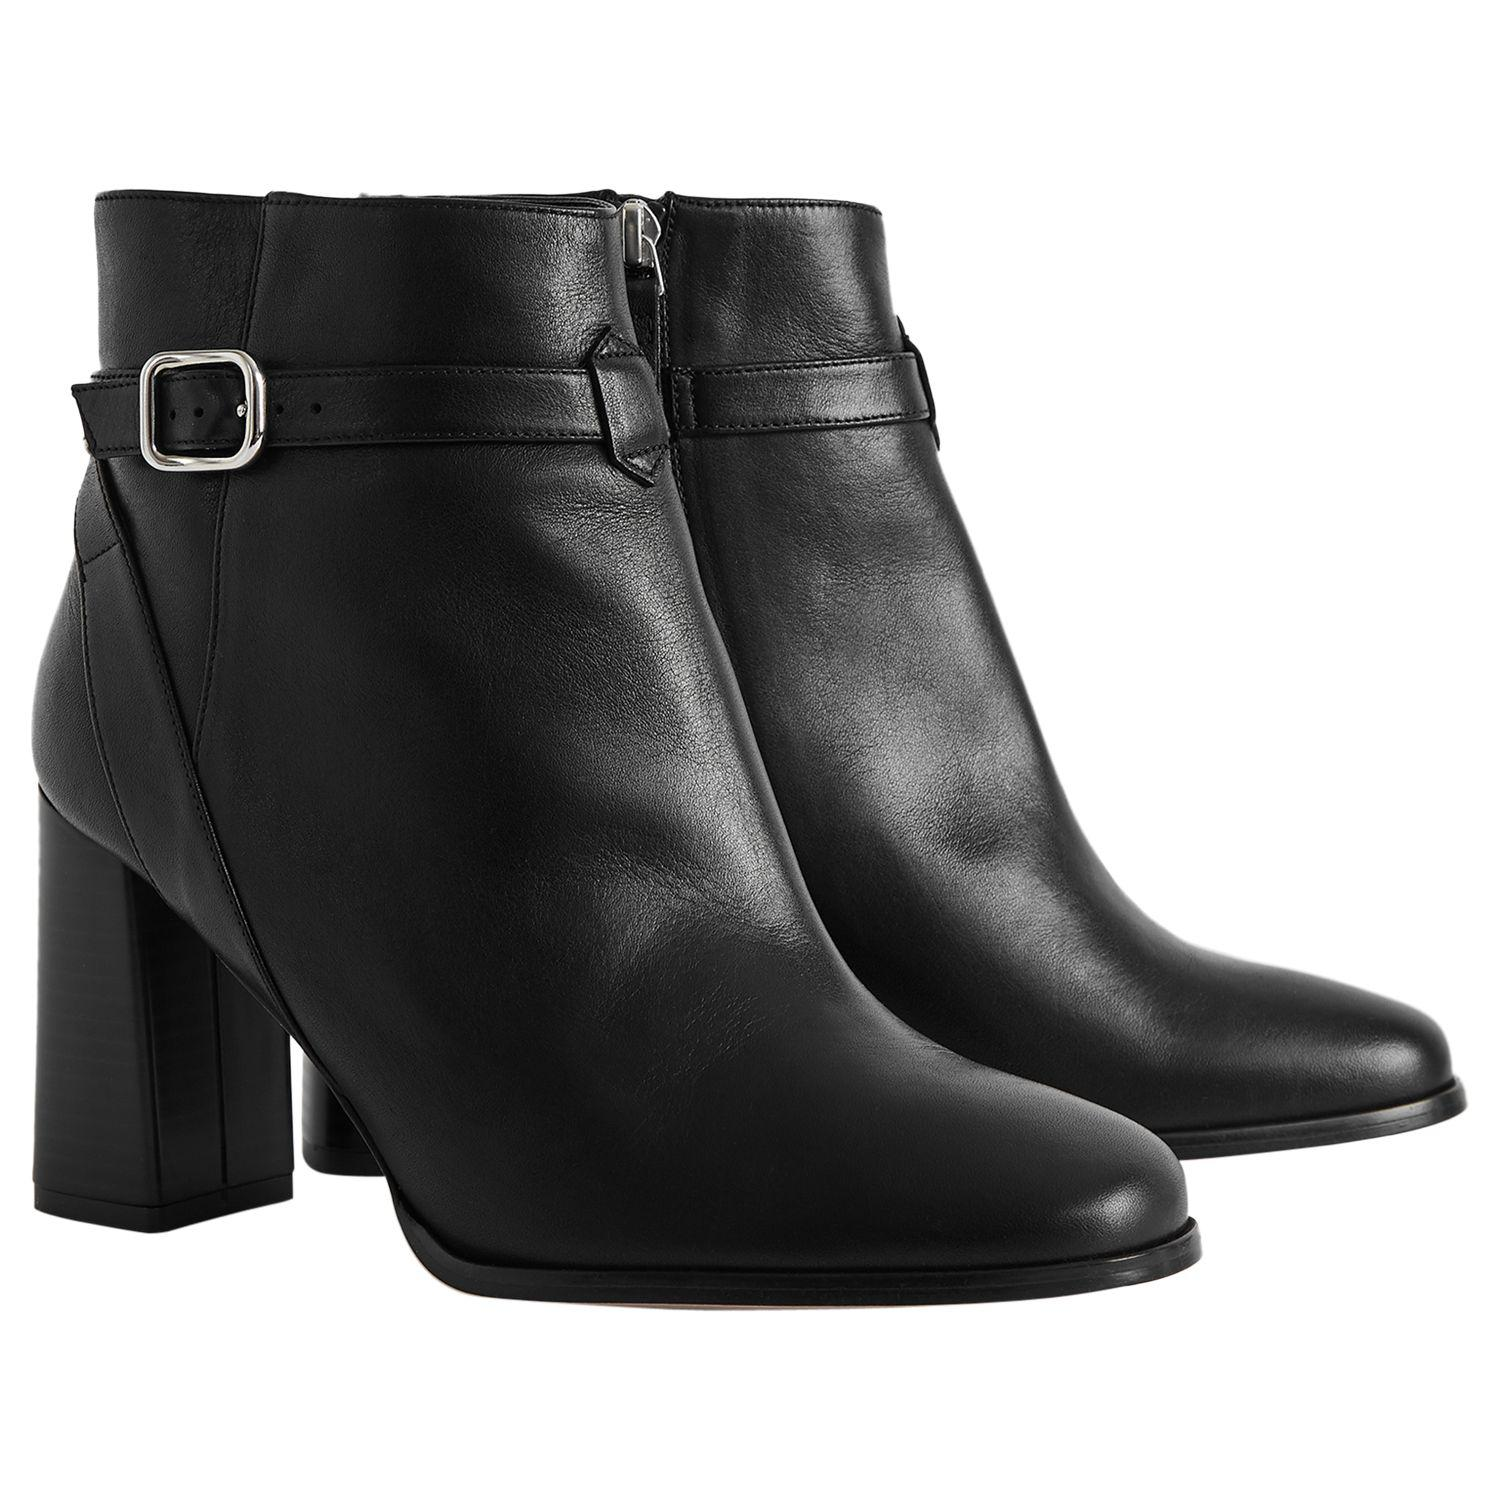 Reiss Fulham Leather Buckle Strap Heeled Ankle Boots in Black